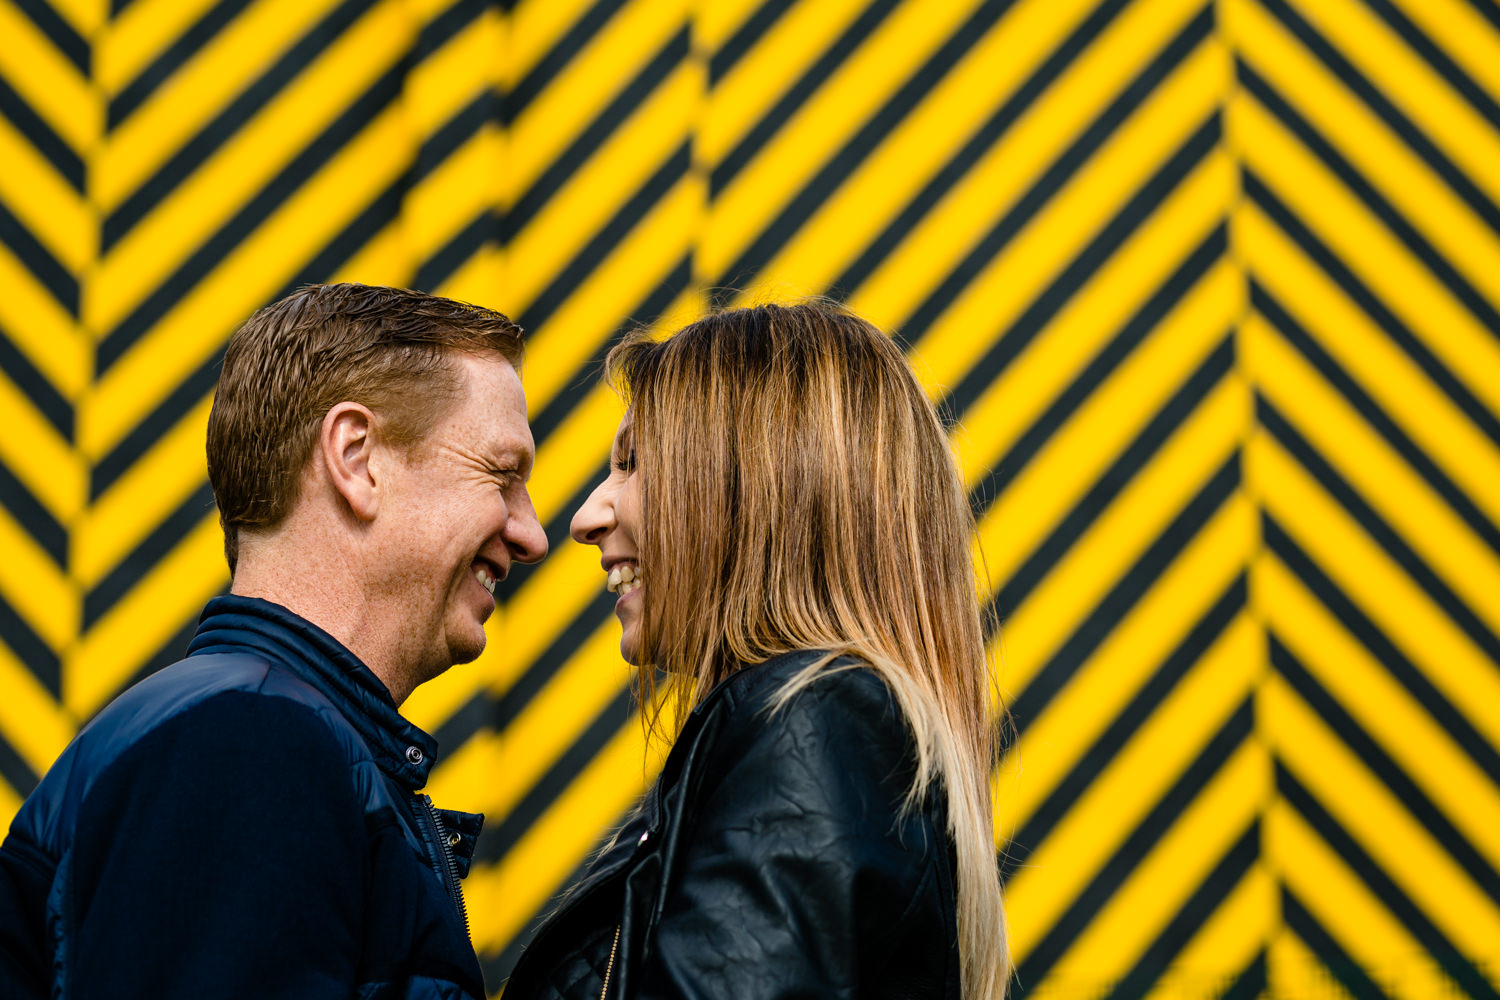 A couple laughing in front of Hacienda inspired street art in Manchester.